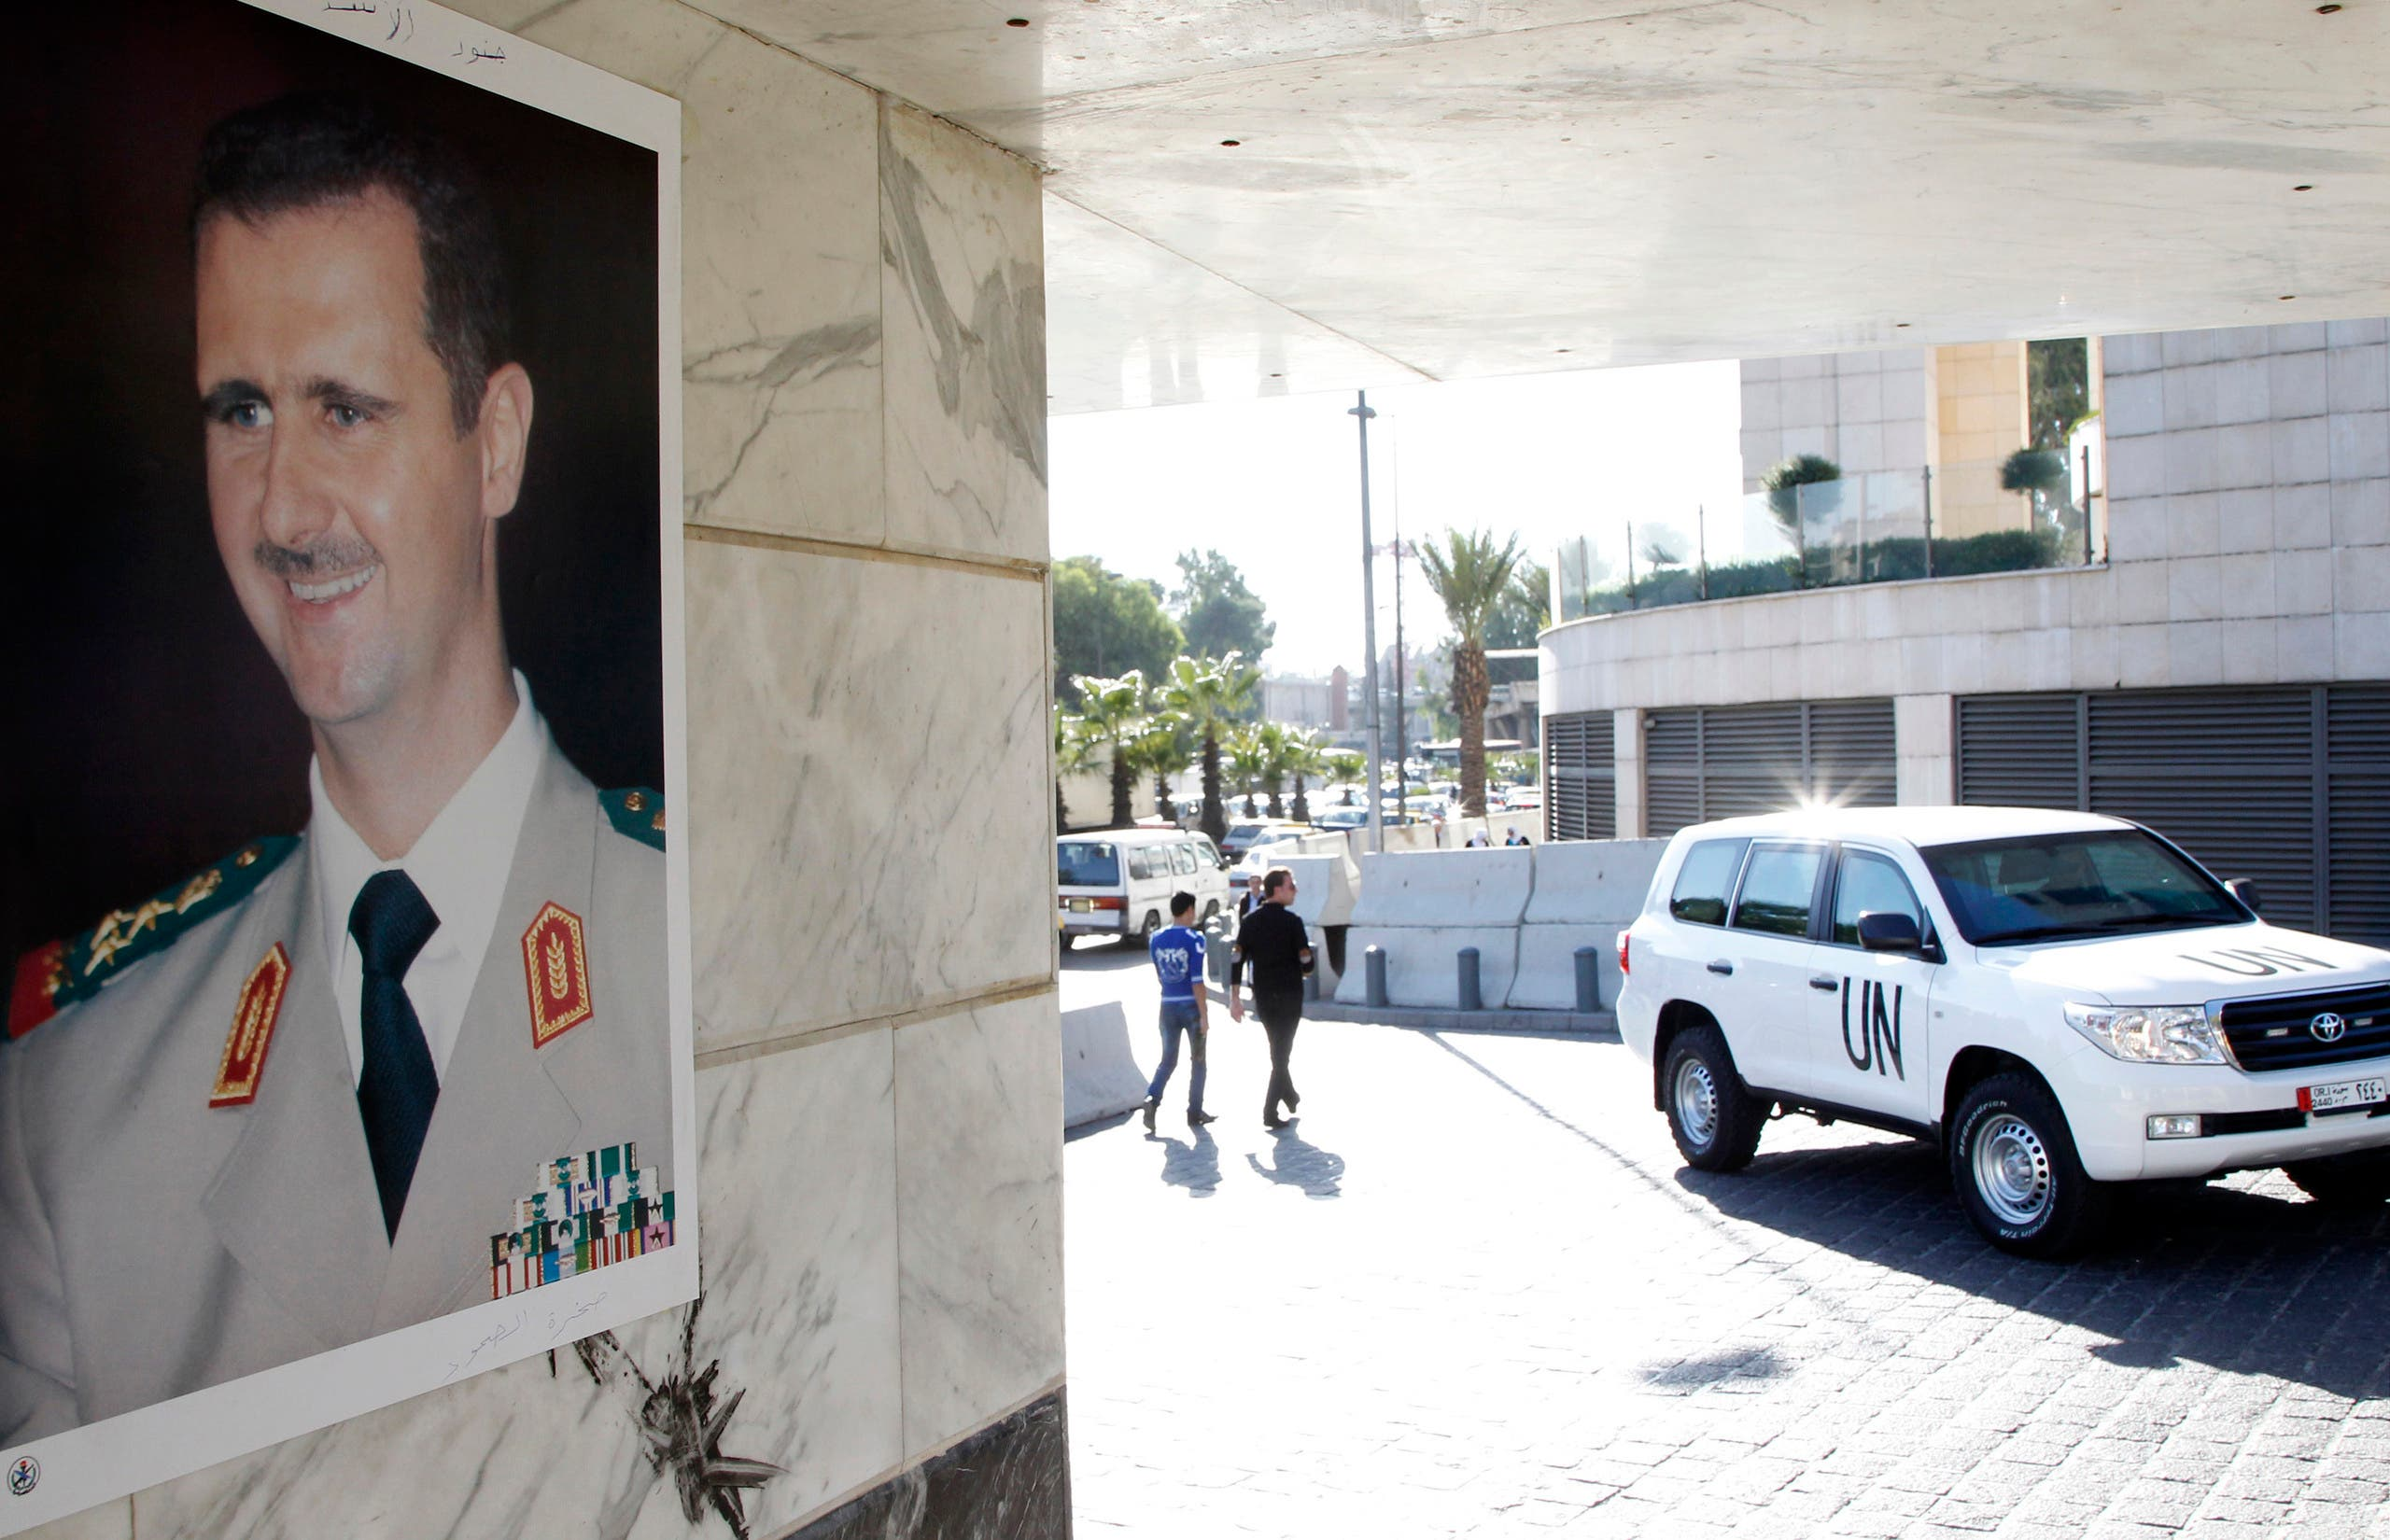 A UN vehicle is seen near a photo of Bashar al-Assad at the entrance of a hotel where a team of experts stayed in Damascus October 8, 2013. (Reuters)